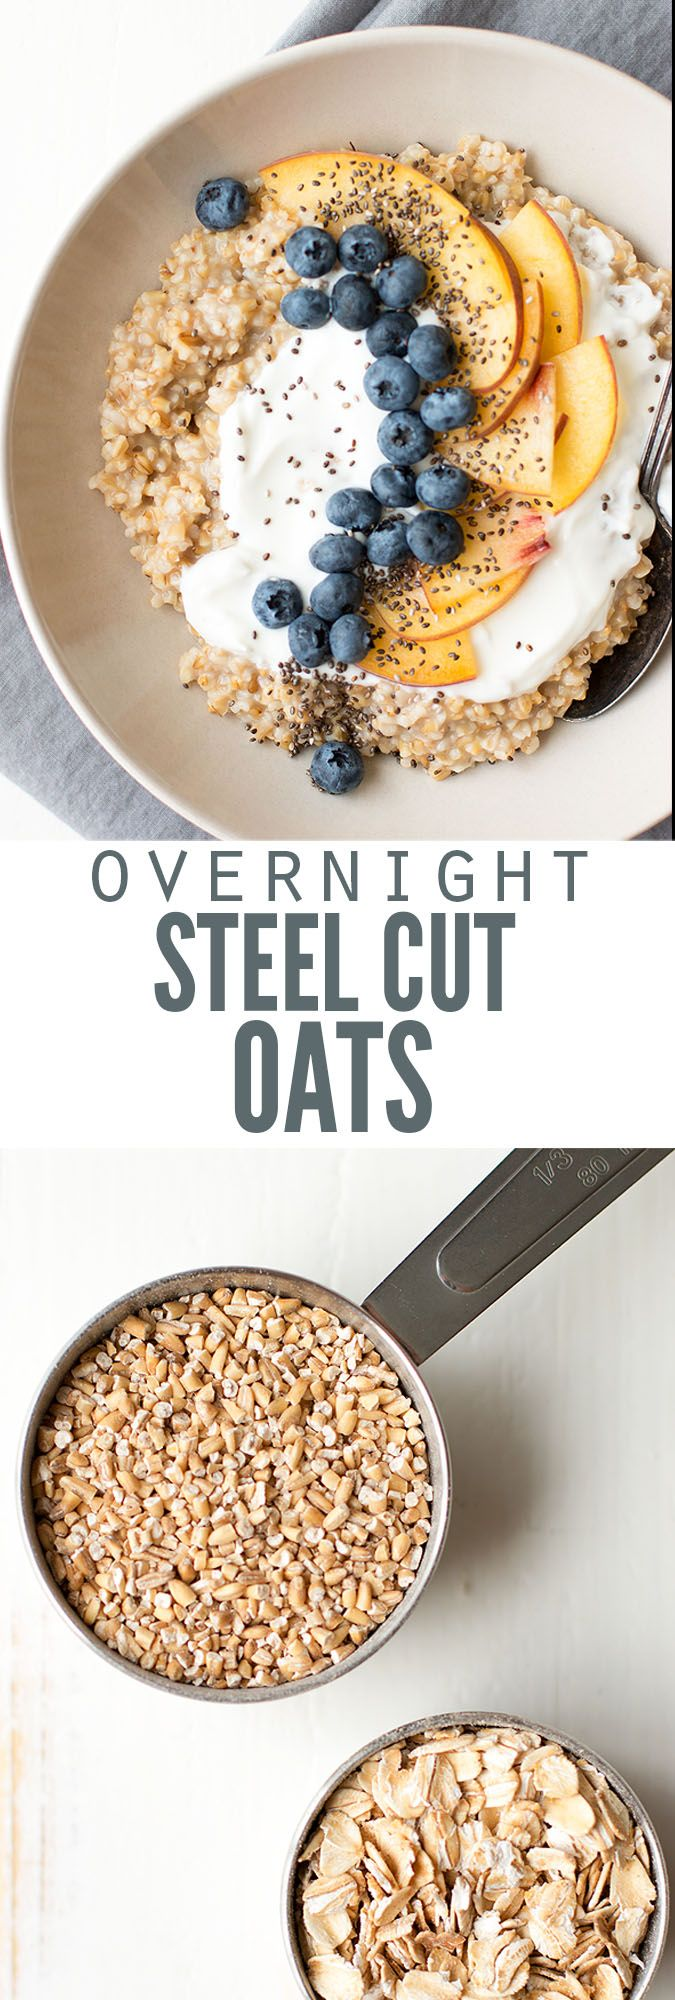 Overnight steel cut oats made perfect without a slow cooker. Toast the oats first for better flavor, they sit overnight then it's all about the toppings! :: DontWastetheCrumbs.com